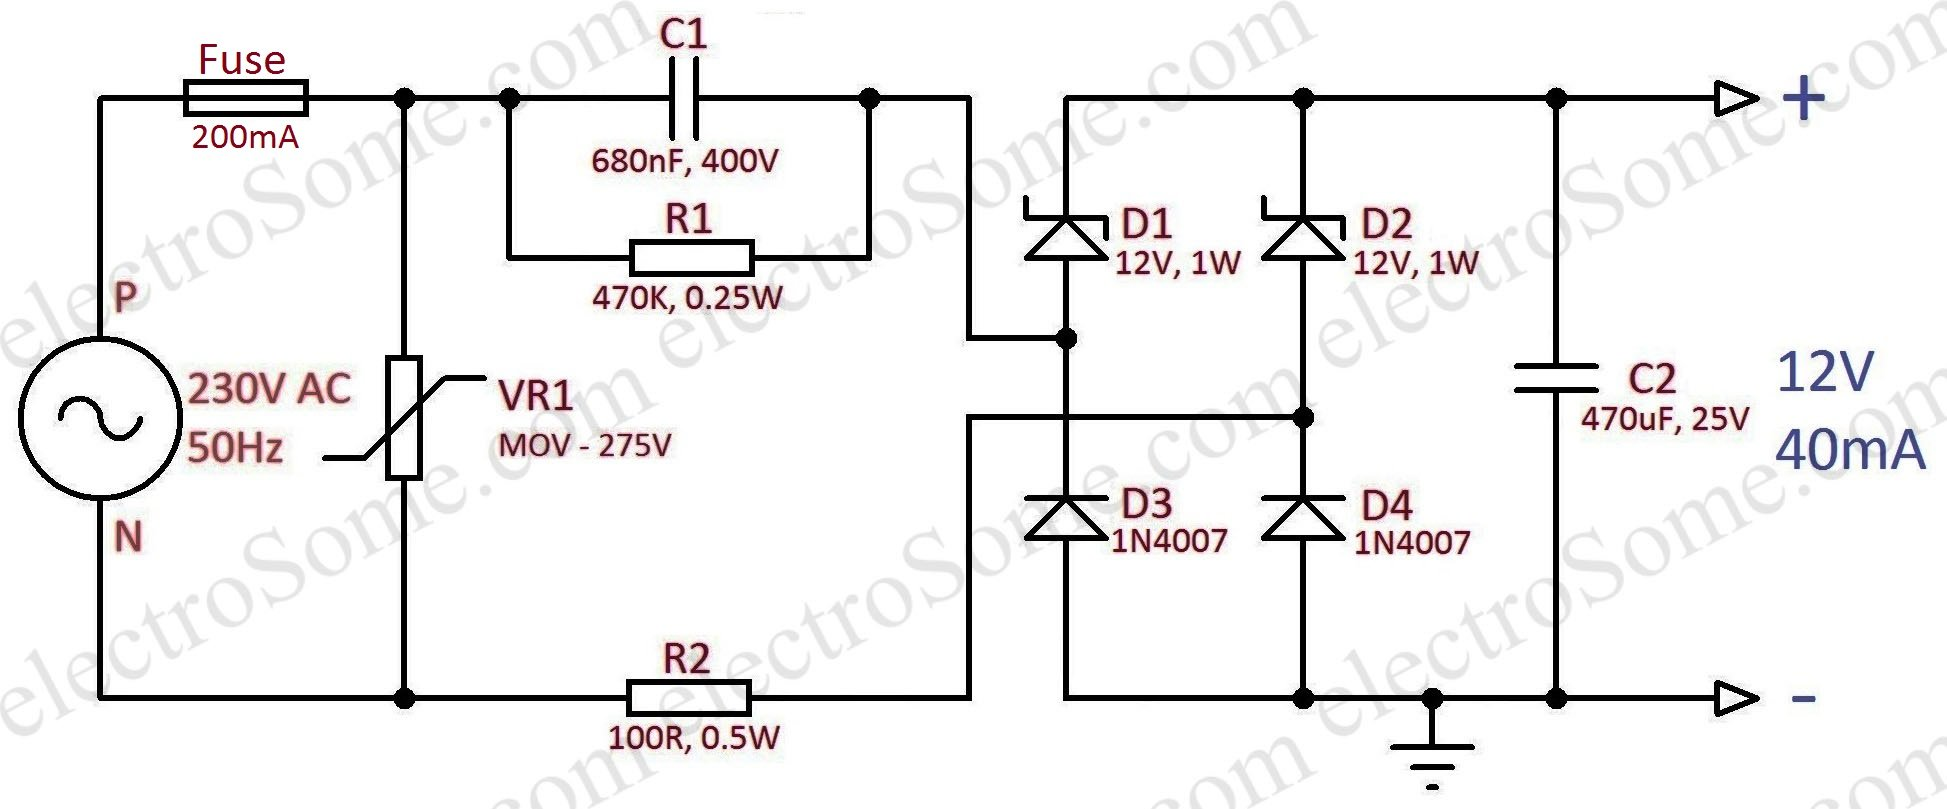 Automatic Night Lamp Using Ldr Changeover Switch Circuit 555 Timer Transformerless Capacitor Power Supply 12v 40ma